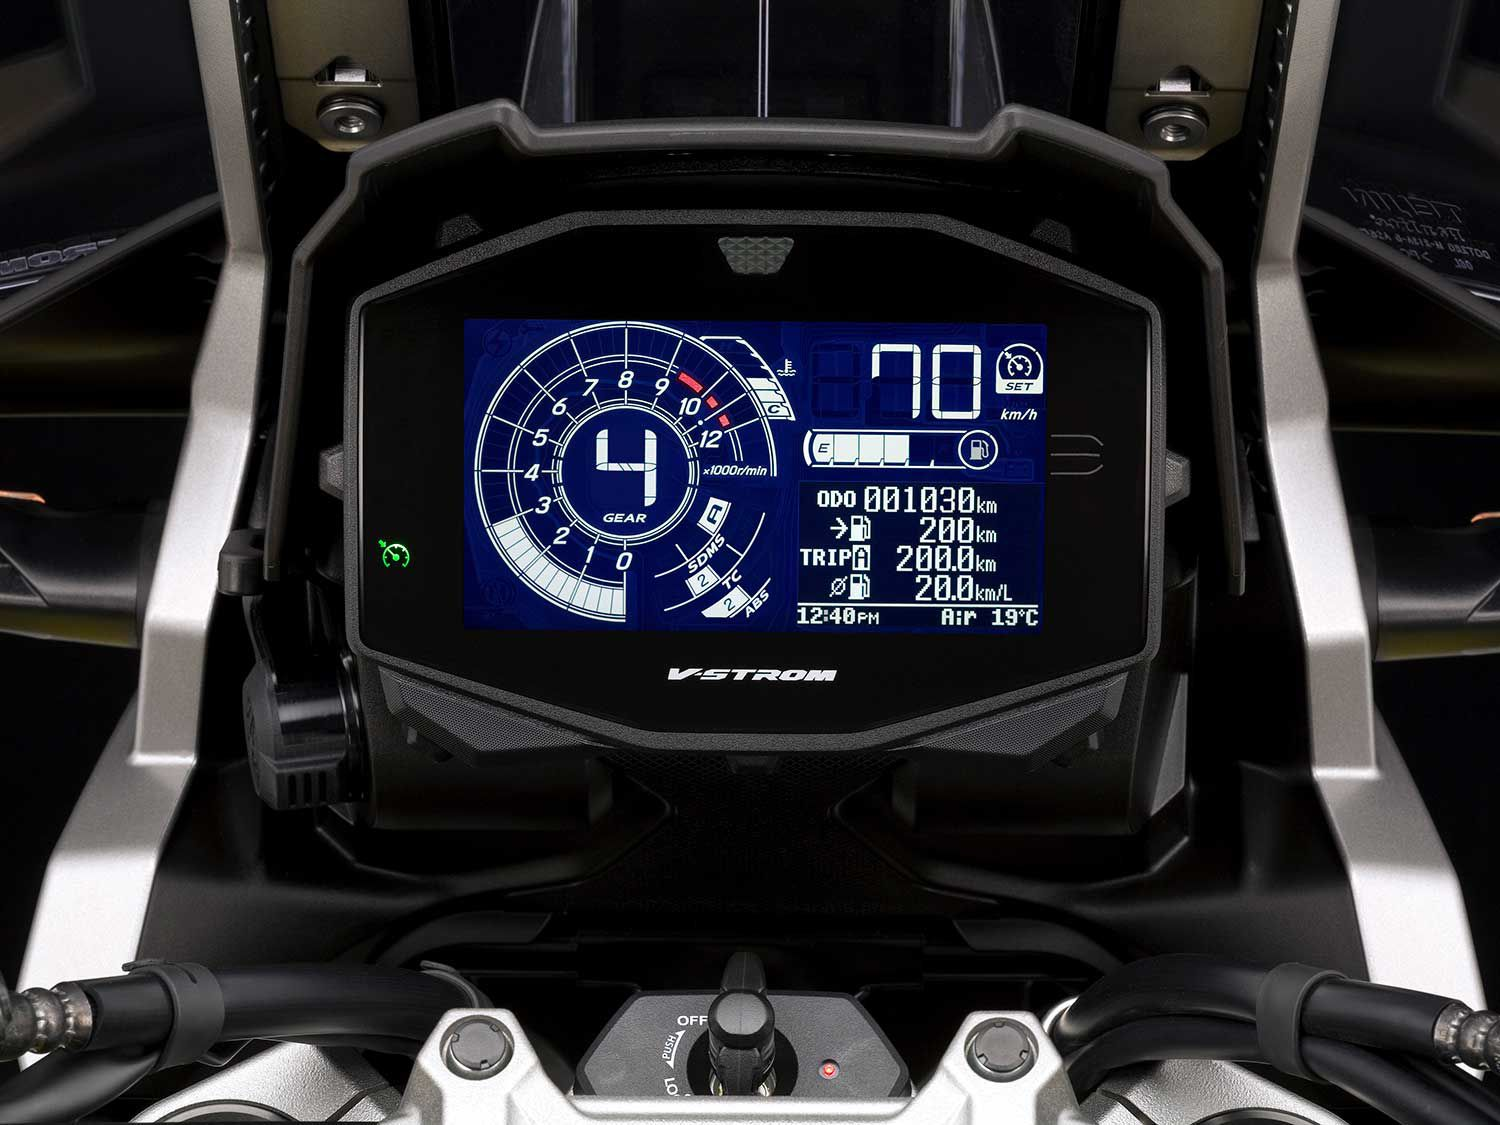 Even though the V-Strom is priced at the lower end of the market, it still could use a TFT dash. While TFT displays look correct to our smartphone-accustomed eyes, and analog gauges are, well, pleasingly analog, LCD screens look like the graphing calculators many of us used in high school calculus. Suzuki's human-computer interface isn't super intuitive and there are too few buttons that control too many things.